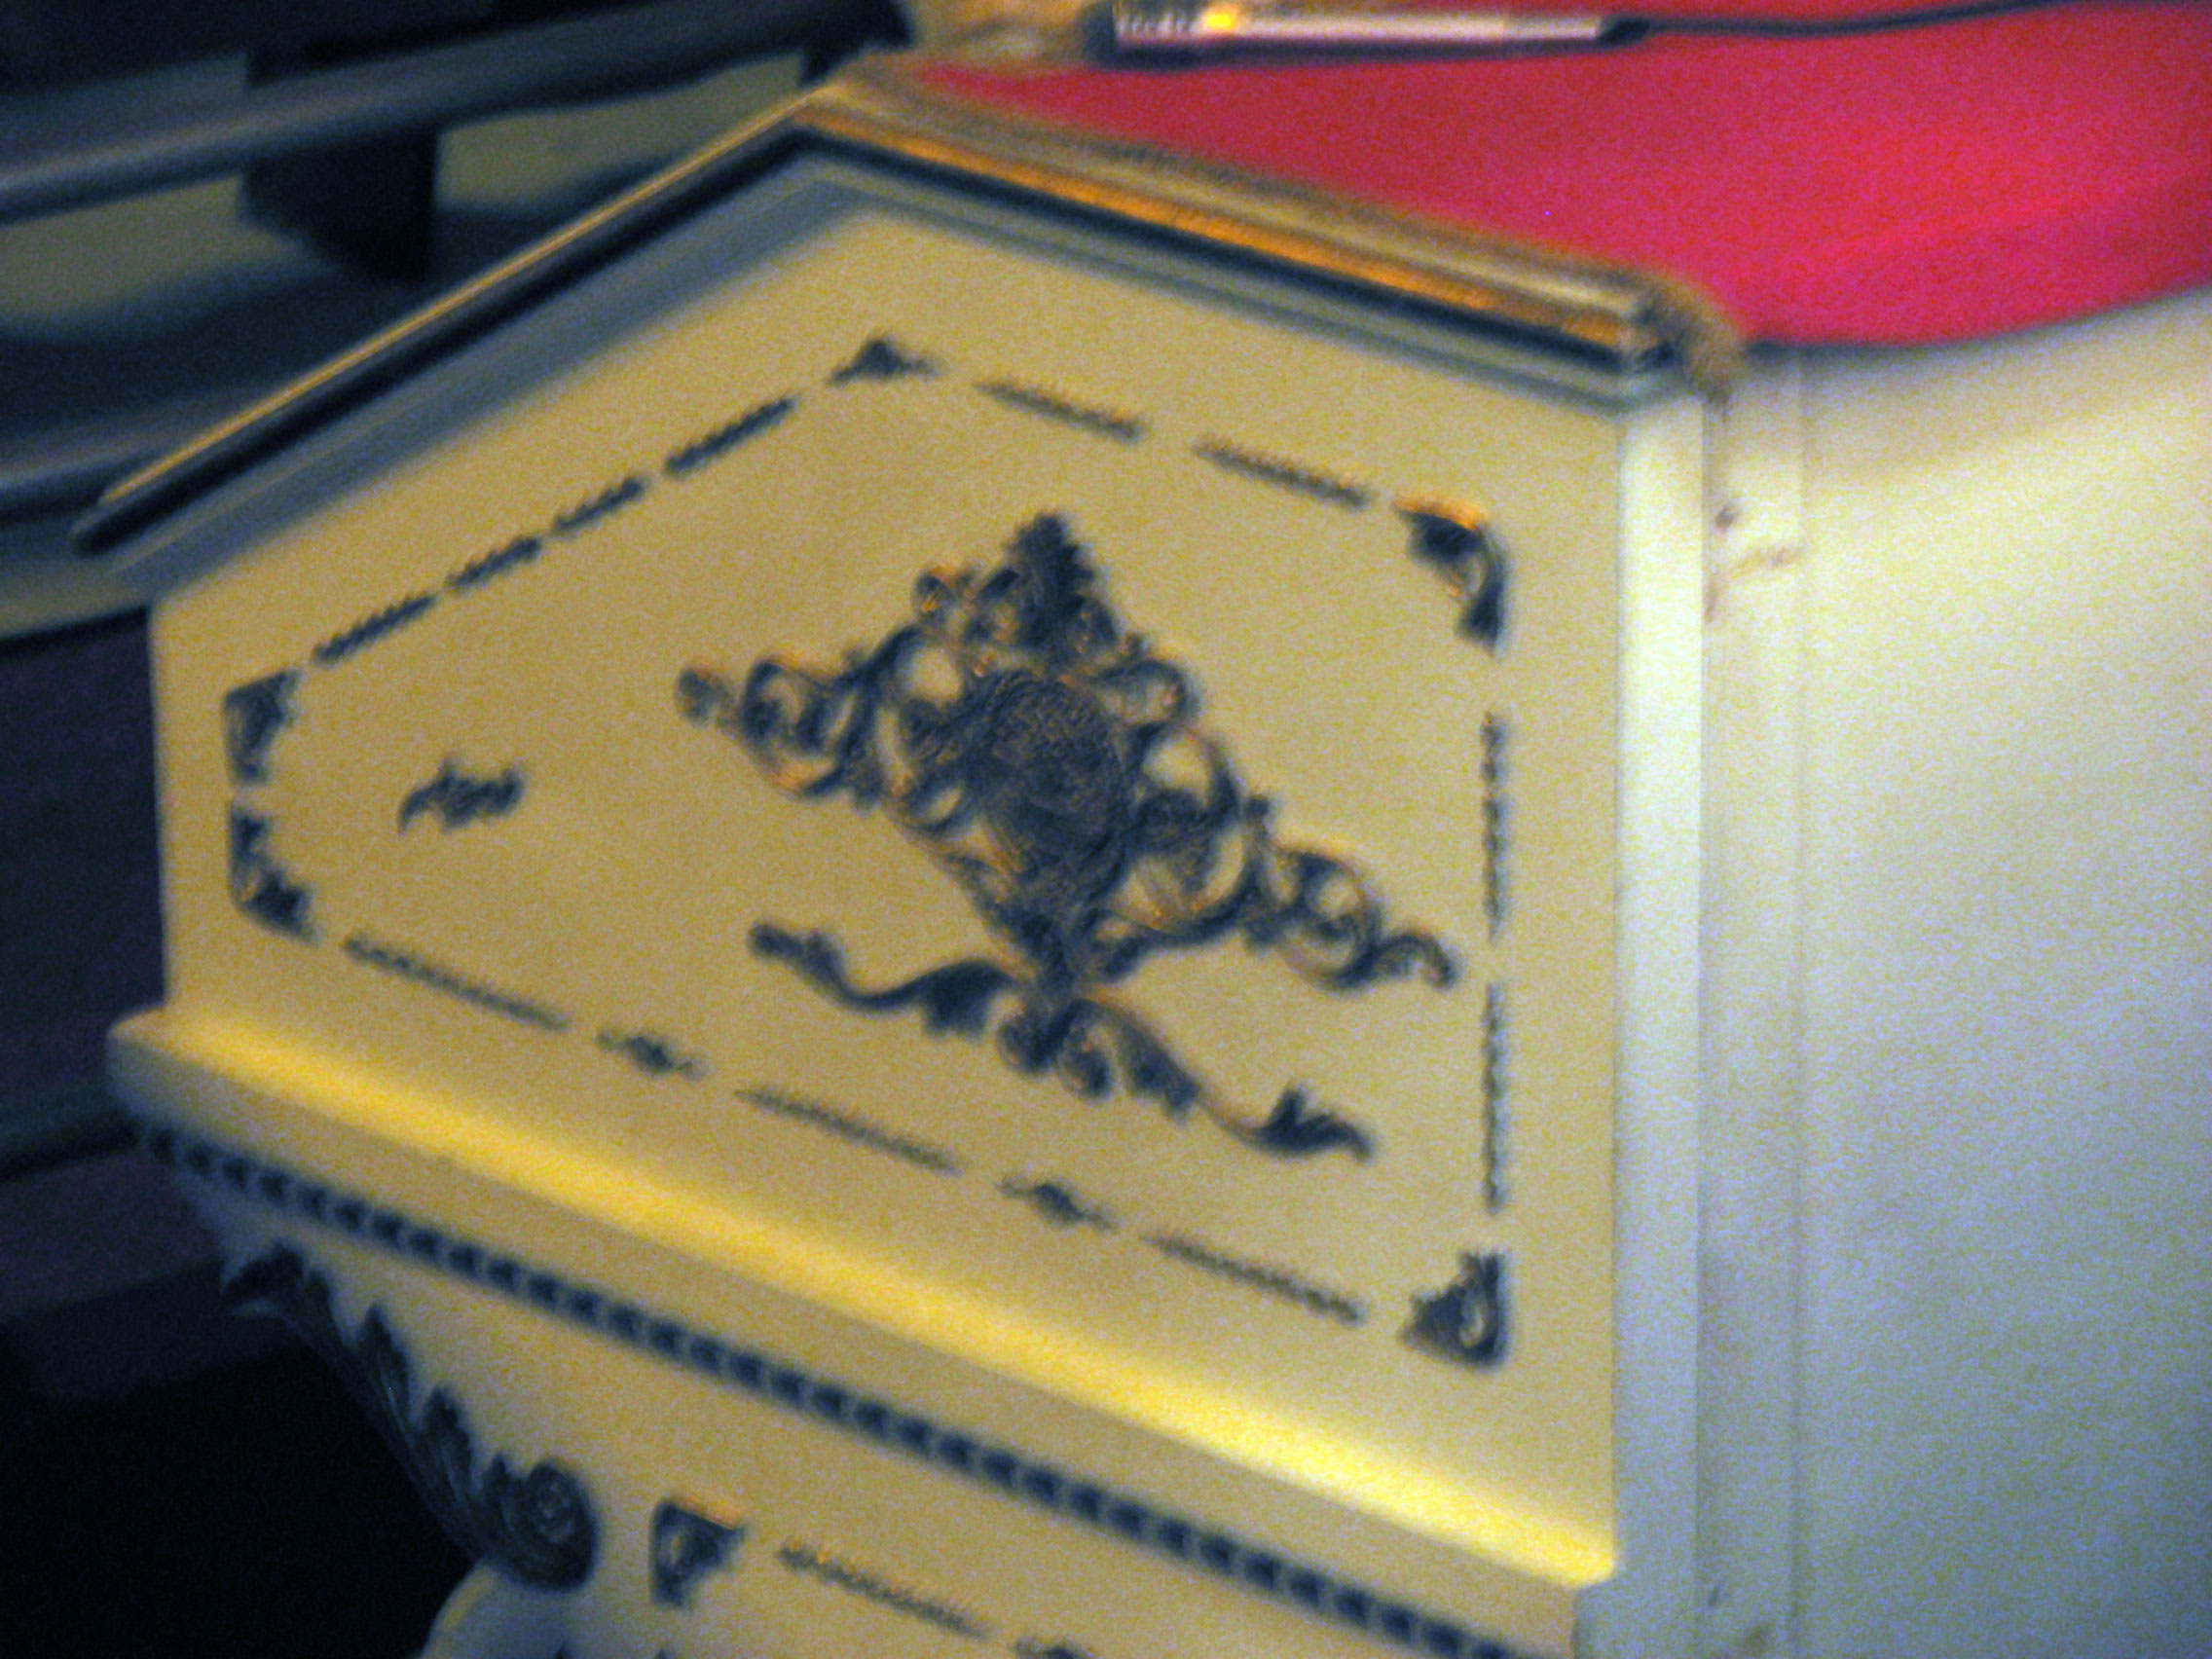 Click here to download a 2816 x 2112 JPG image showing the gold leaf decorations on the white woodwork of this gorgeous console.